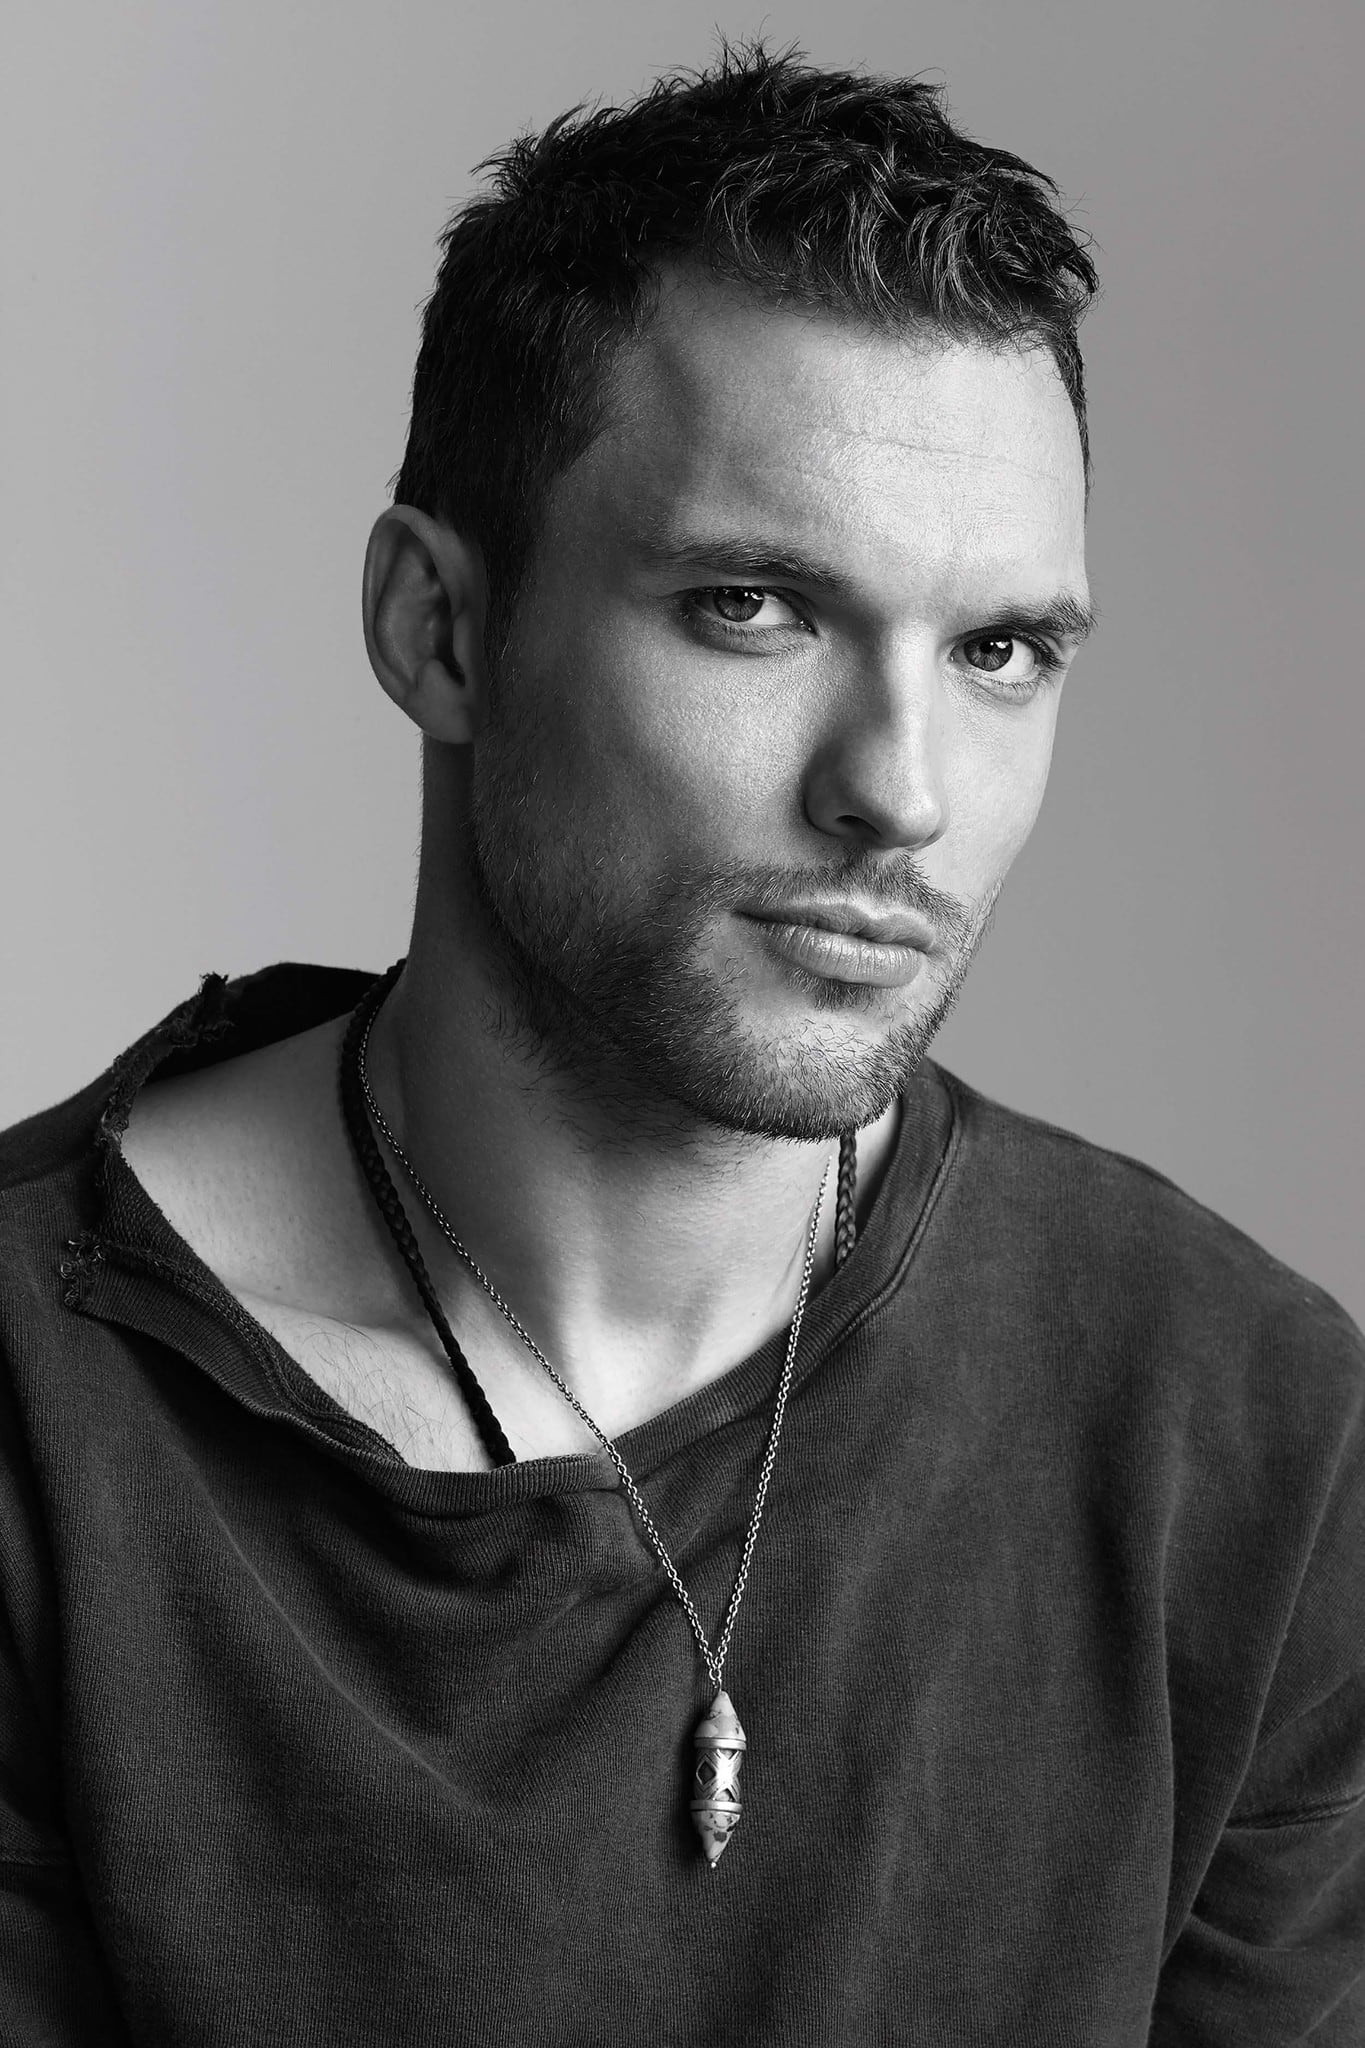 ed skrein vked skrein wife, ed skrein gif, ed skrein height, ed skrein game of throne, ed skrein vk, ed skrein tumblr, ed skrein filmi, ed skrein deadpool, ed skrein age, ed skrein model, ed skrein daario, ed skrein healthy celeb, ed skrein gallery, ed skrein just jared, ed skrein got, ed skrein movies, ed skrein music, ed skrein filmleri, ed skrein real height, ed skrein ajax